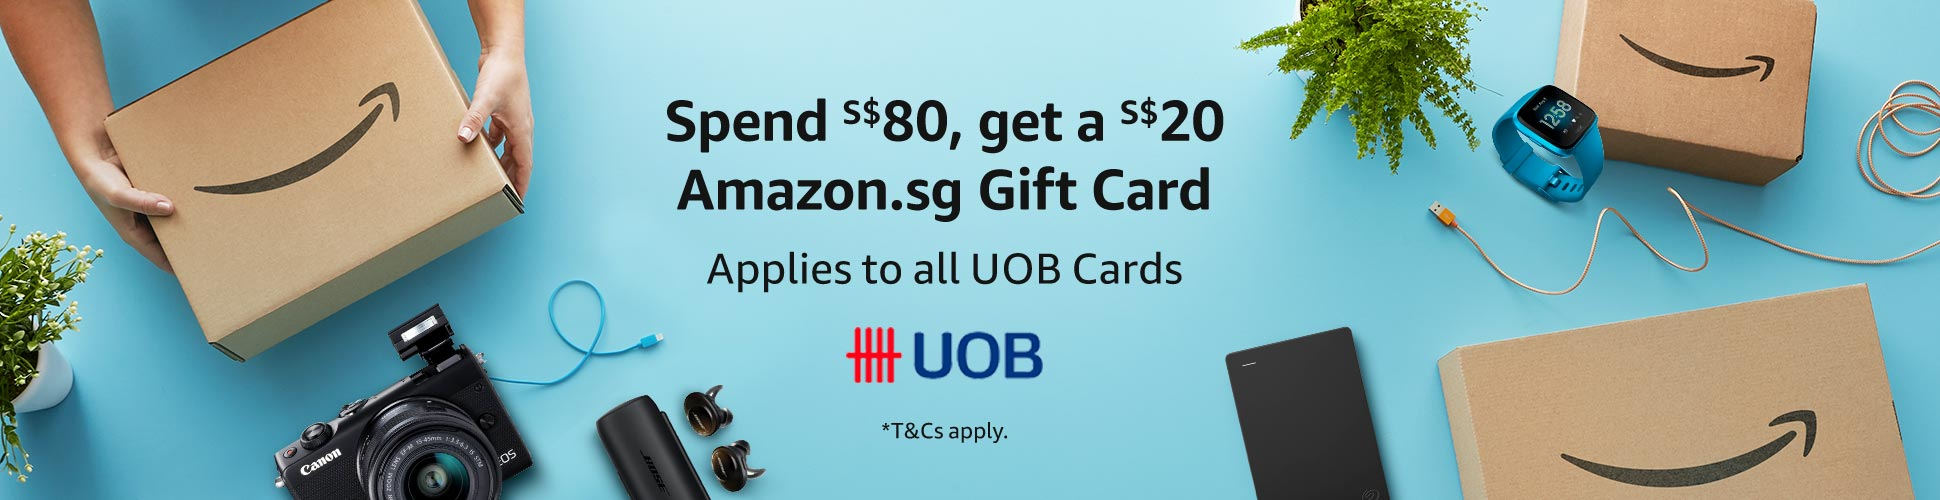 UOB March Promotion